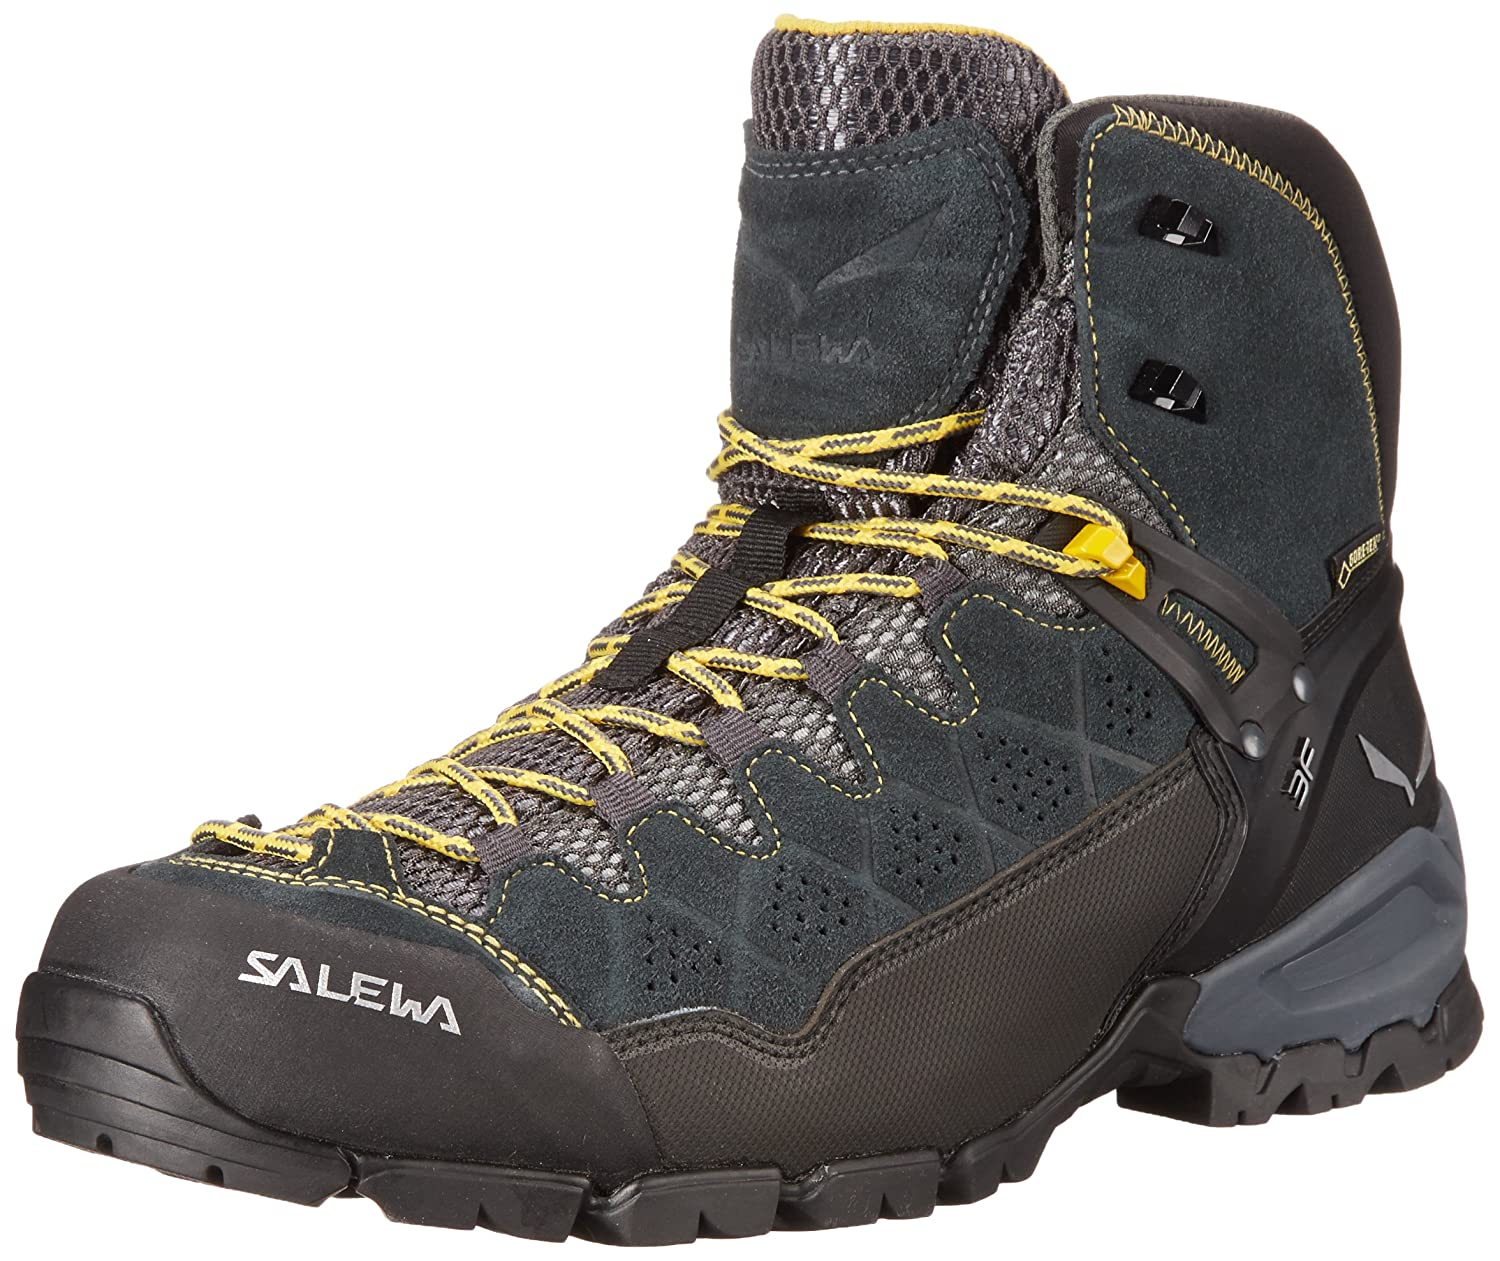 Salewa Men S Alp Trainer Mid Gtx Technical Approach Shoe Review